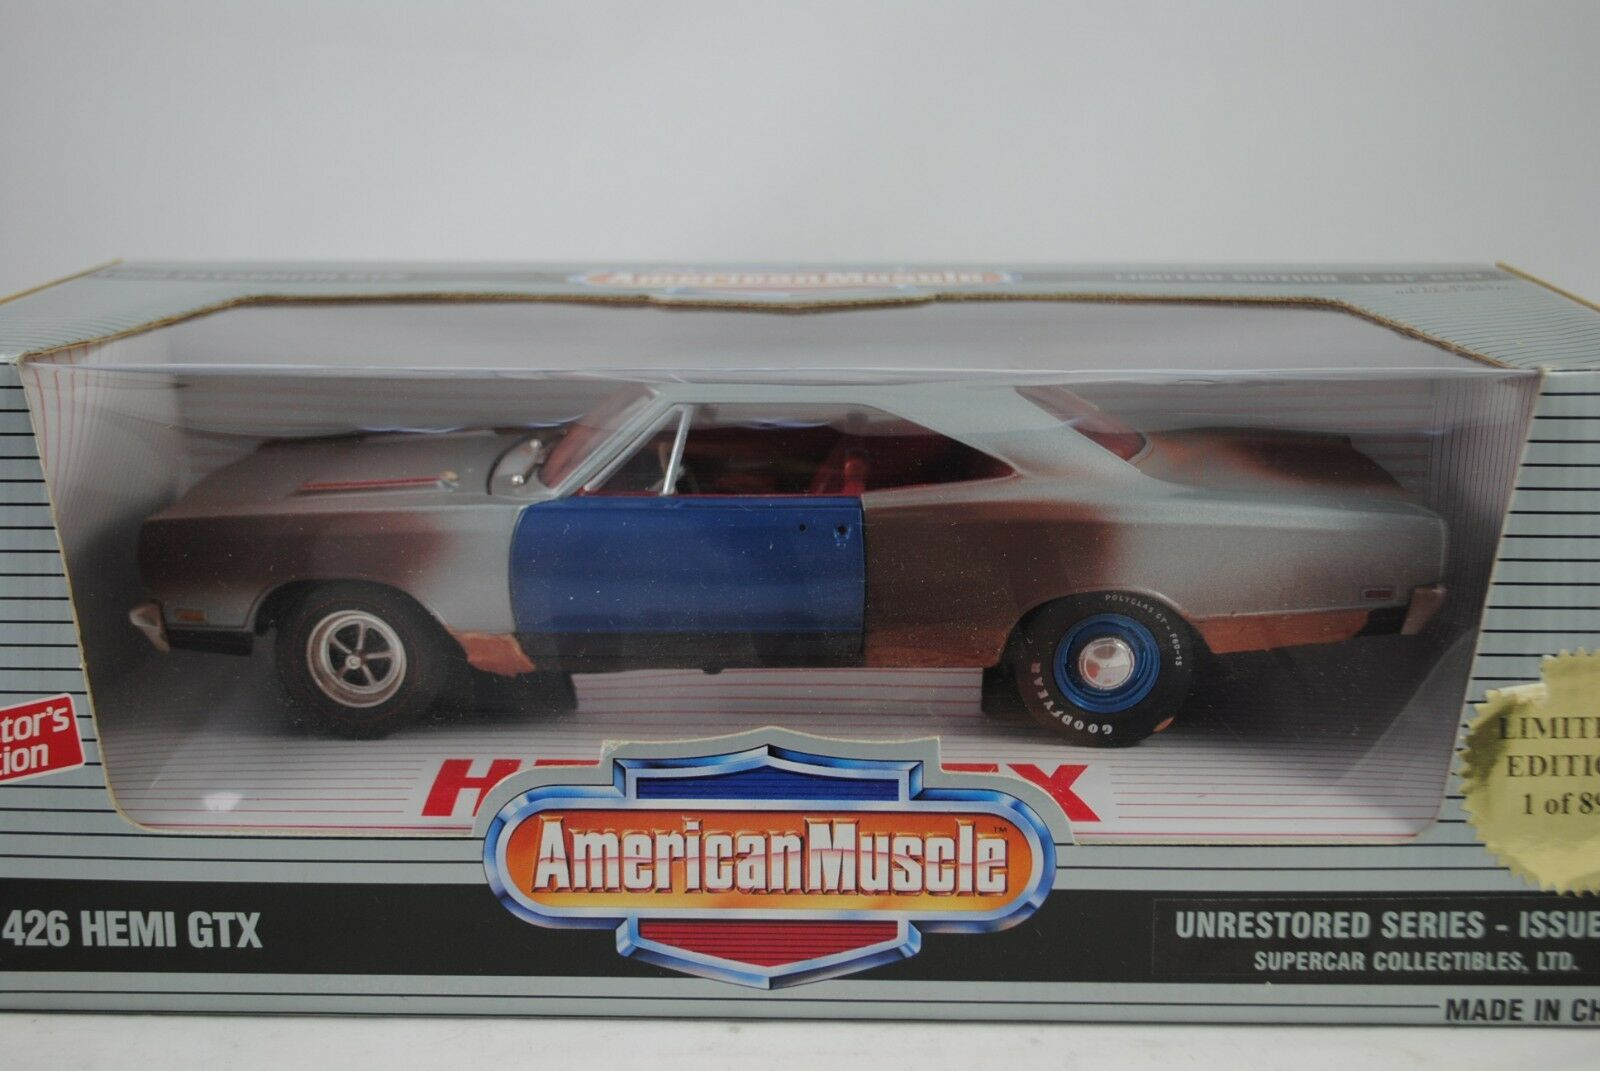 1 18 Ertl 1969 Plymouth 426 Hemi GTX Unrestorosso Series Lmtd.1 Of 899 Rareza